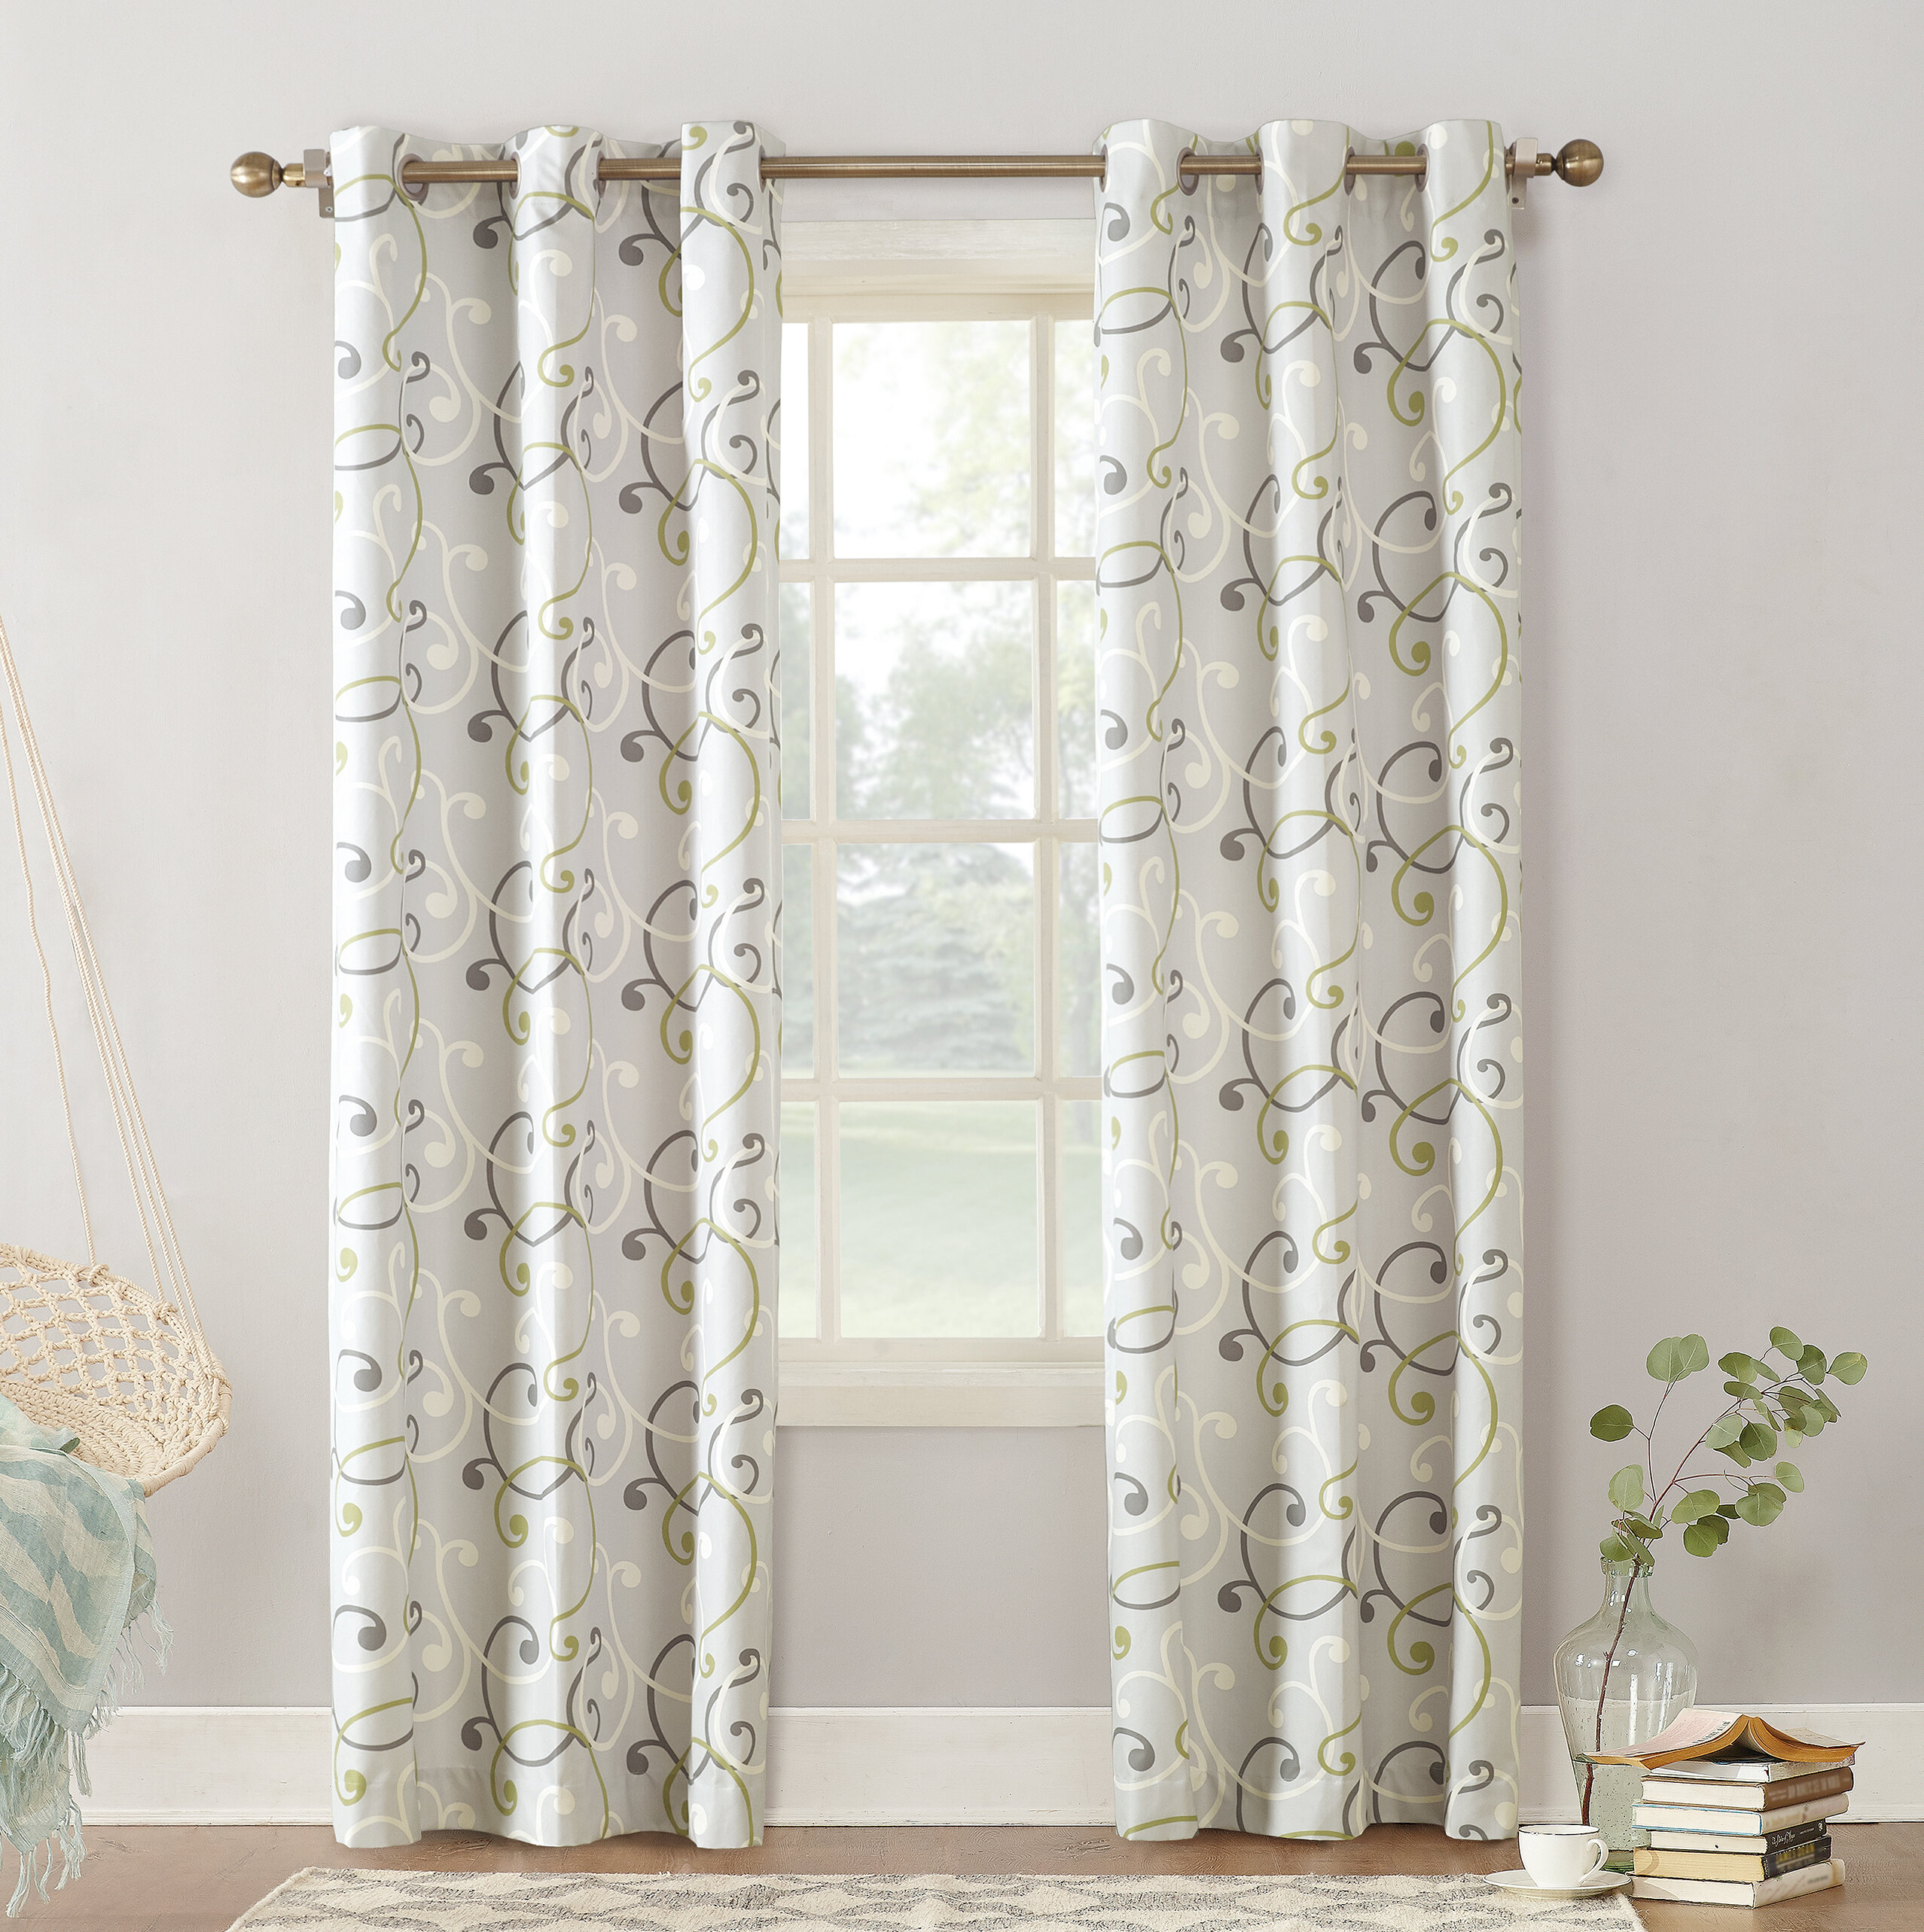 bar sidelights blinds glass side drape grommet patio site screen size panel venting rollers doors furniture with drapes sidelites windows single sidelight outswing full door wheel curtains curtain